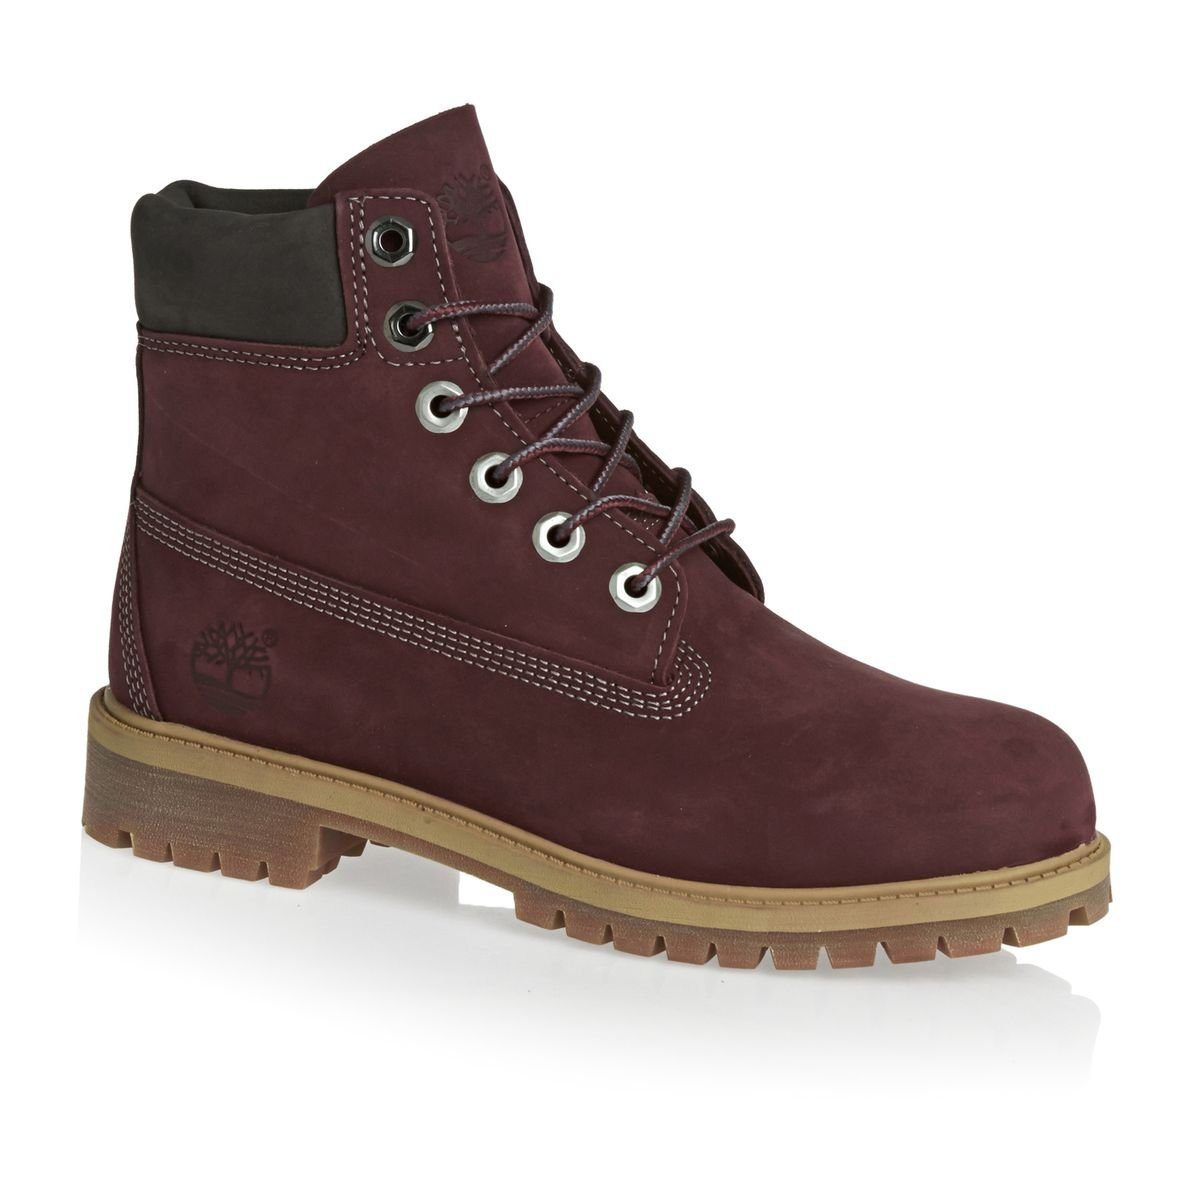 Timberland - - Premium Boot Mixte - Mixte Junior - Rouge 011869d - therethere.space